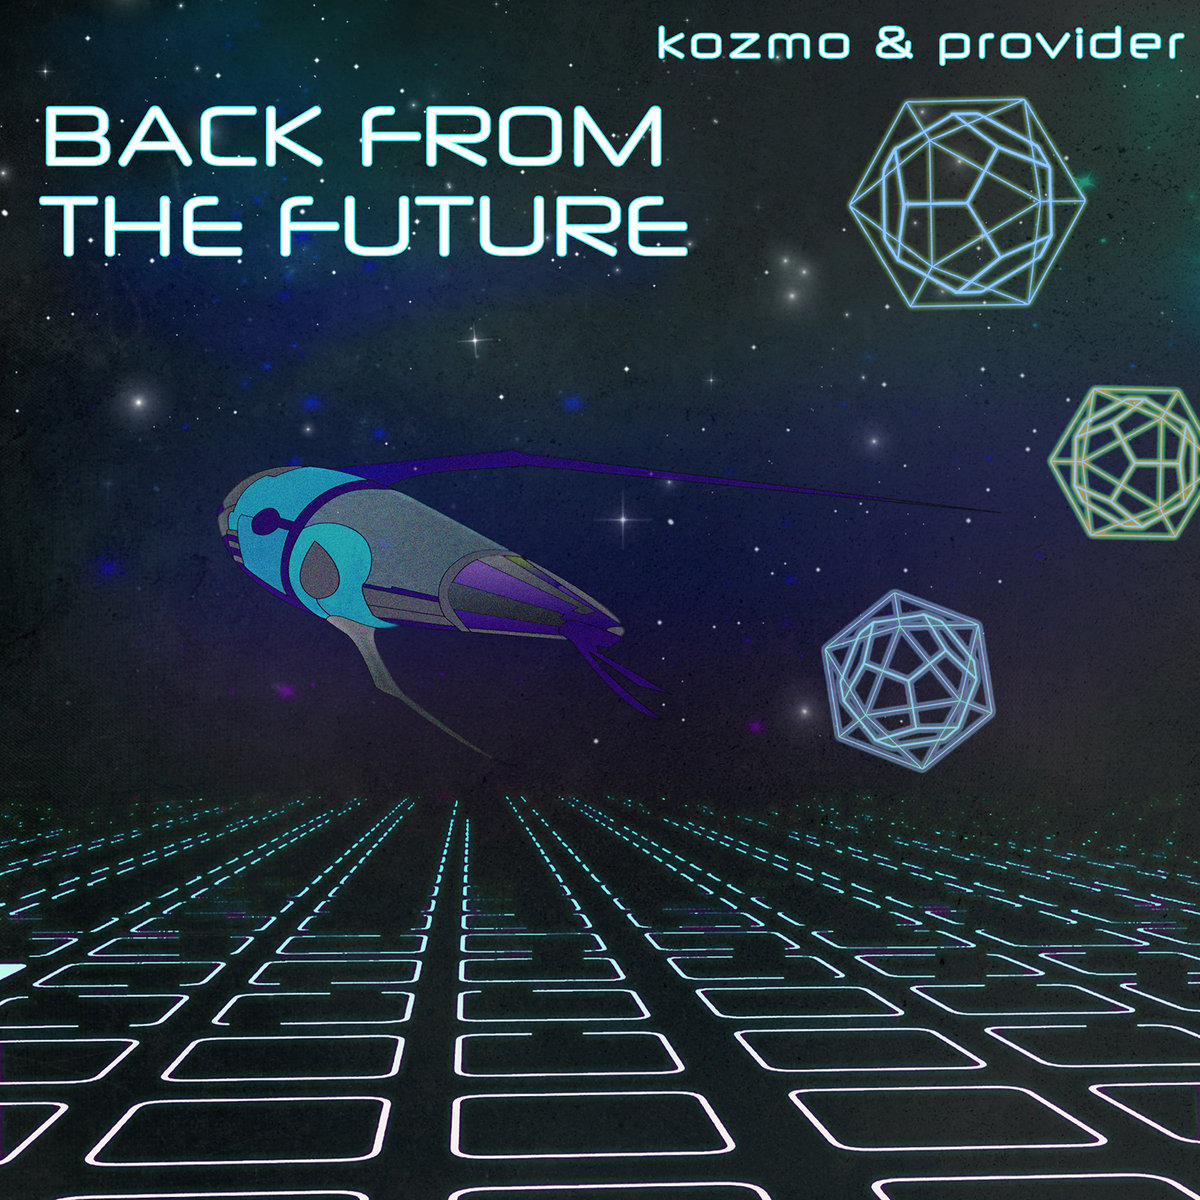 KOZMO & Provider - Eris (BOATS Remix) @ 'Back From the Future' album (electronic, dubstep)